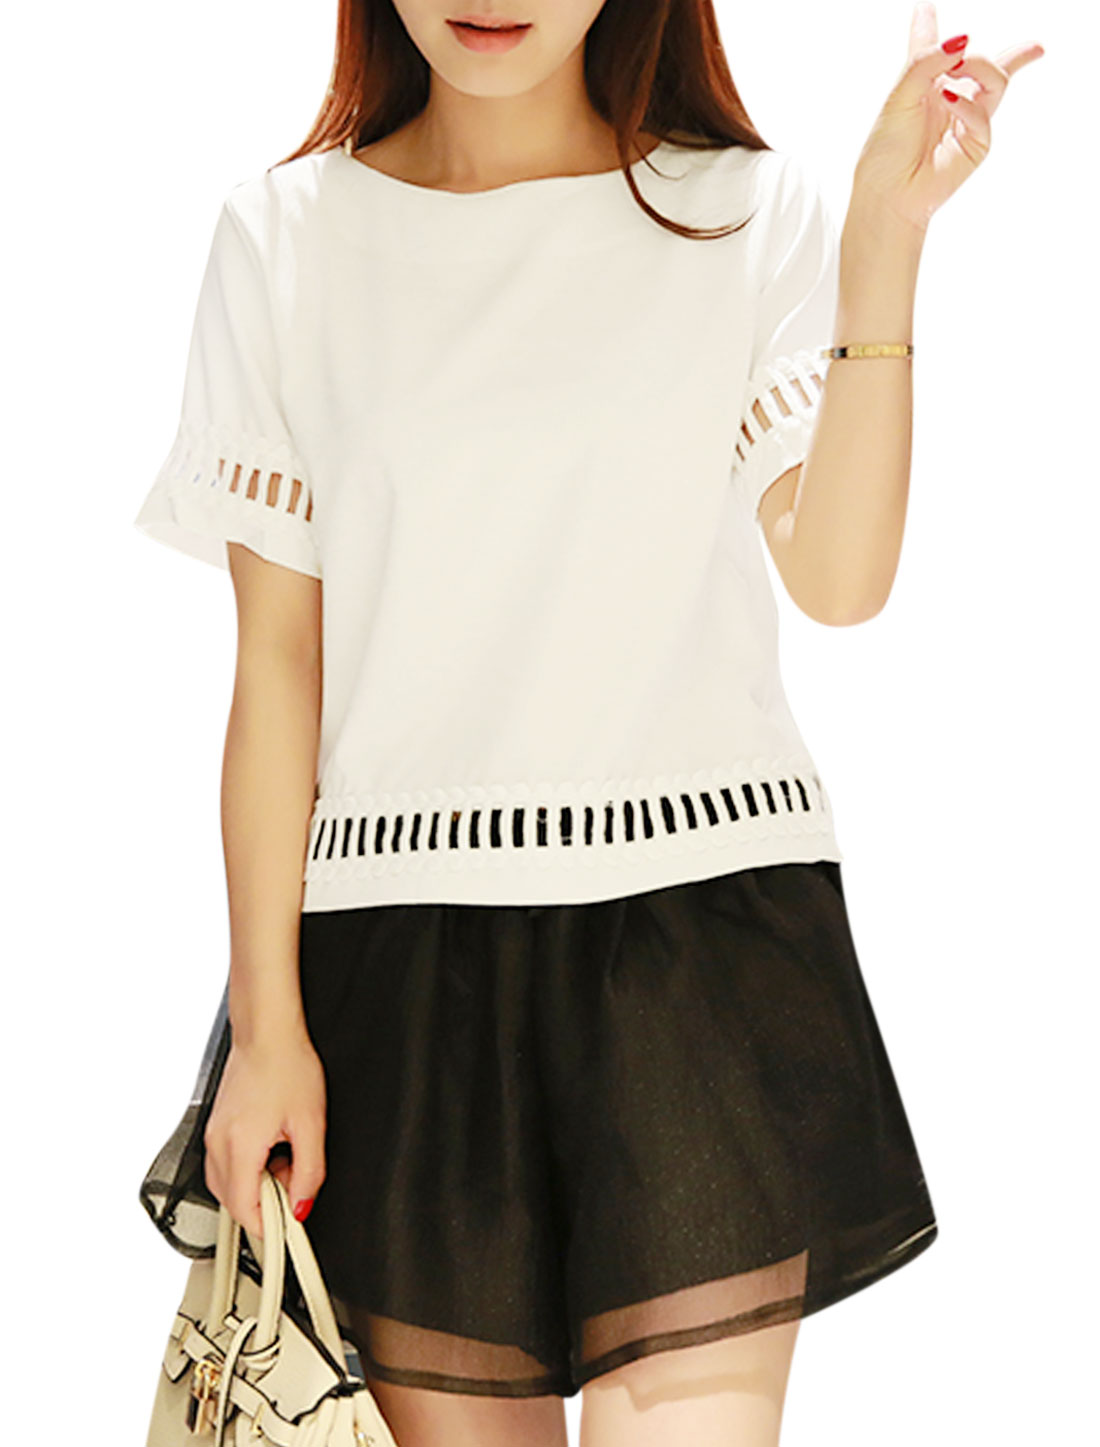 Lady Hollow Out Detail Round Neck Short Sleeves Slipover Panel Top White XS